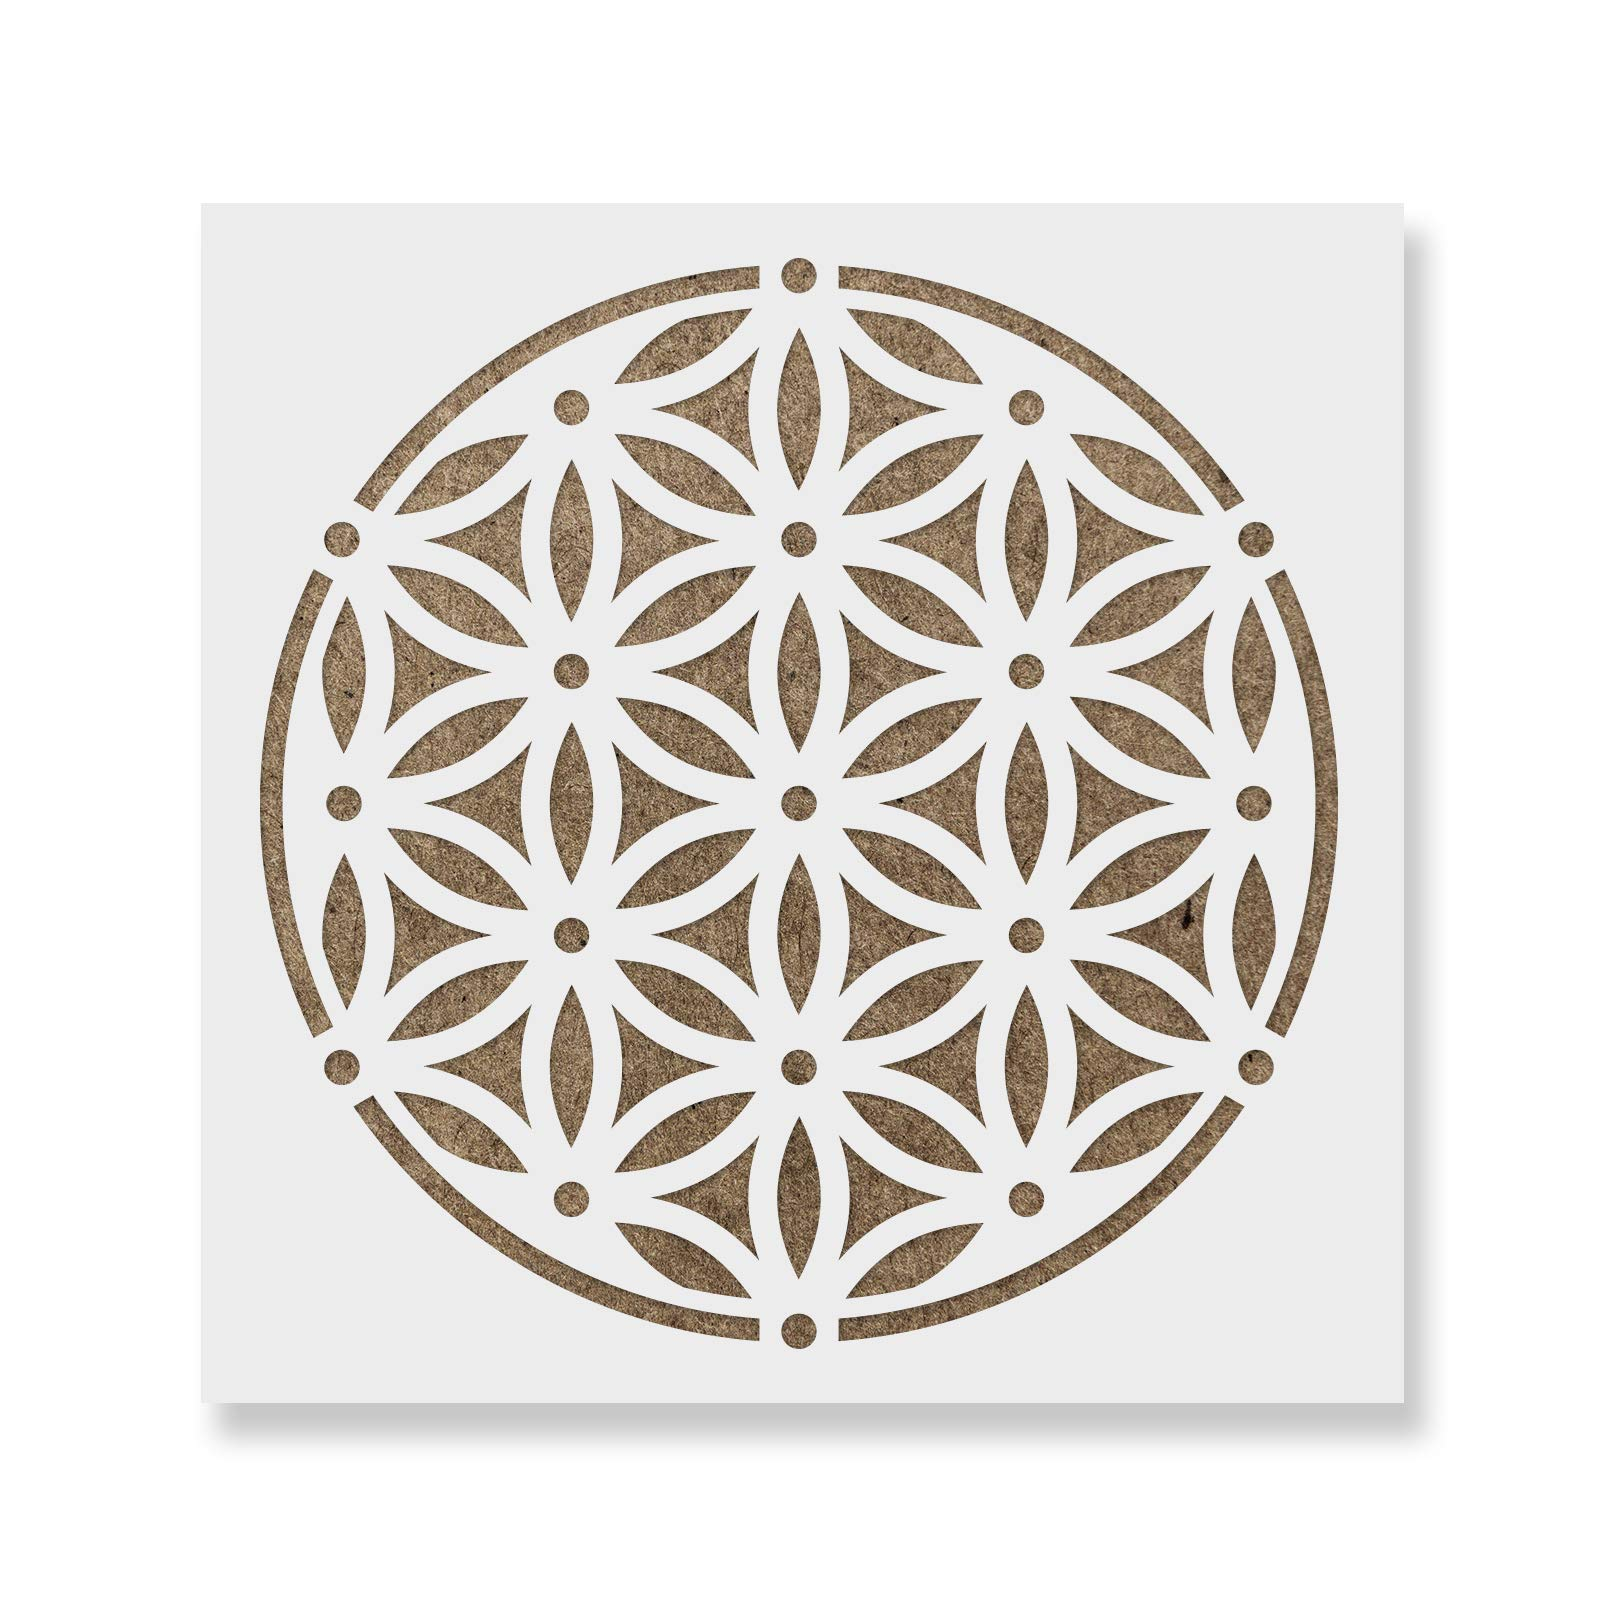 Sacred Flower of Life Stencil Template for Walls and Crafts - Reusable Stencils for Painting in Small & Large Sizes